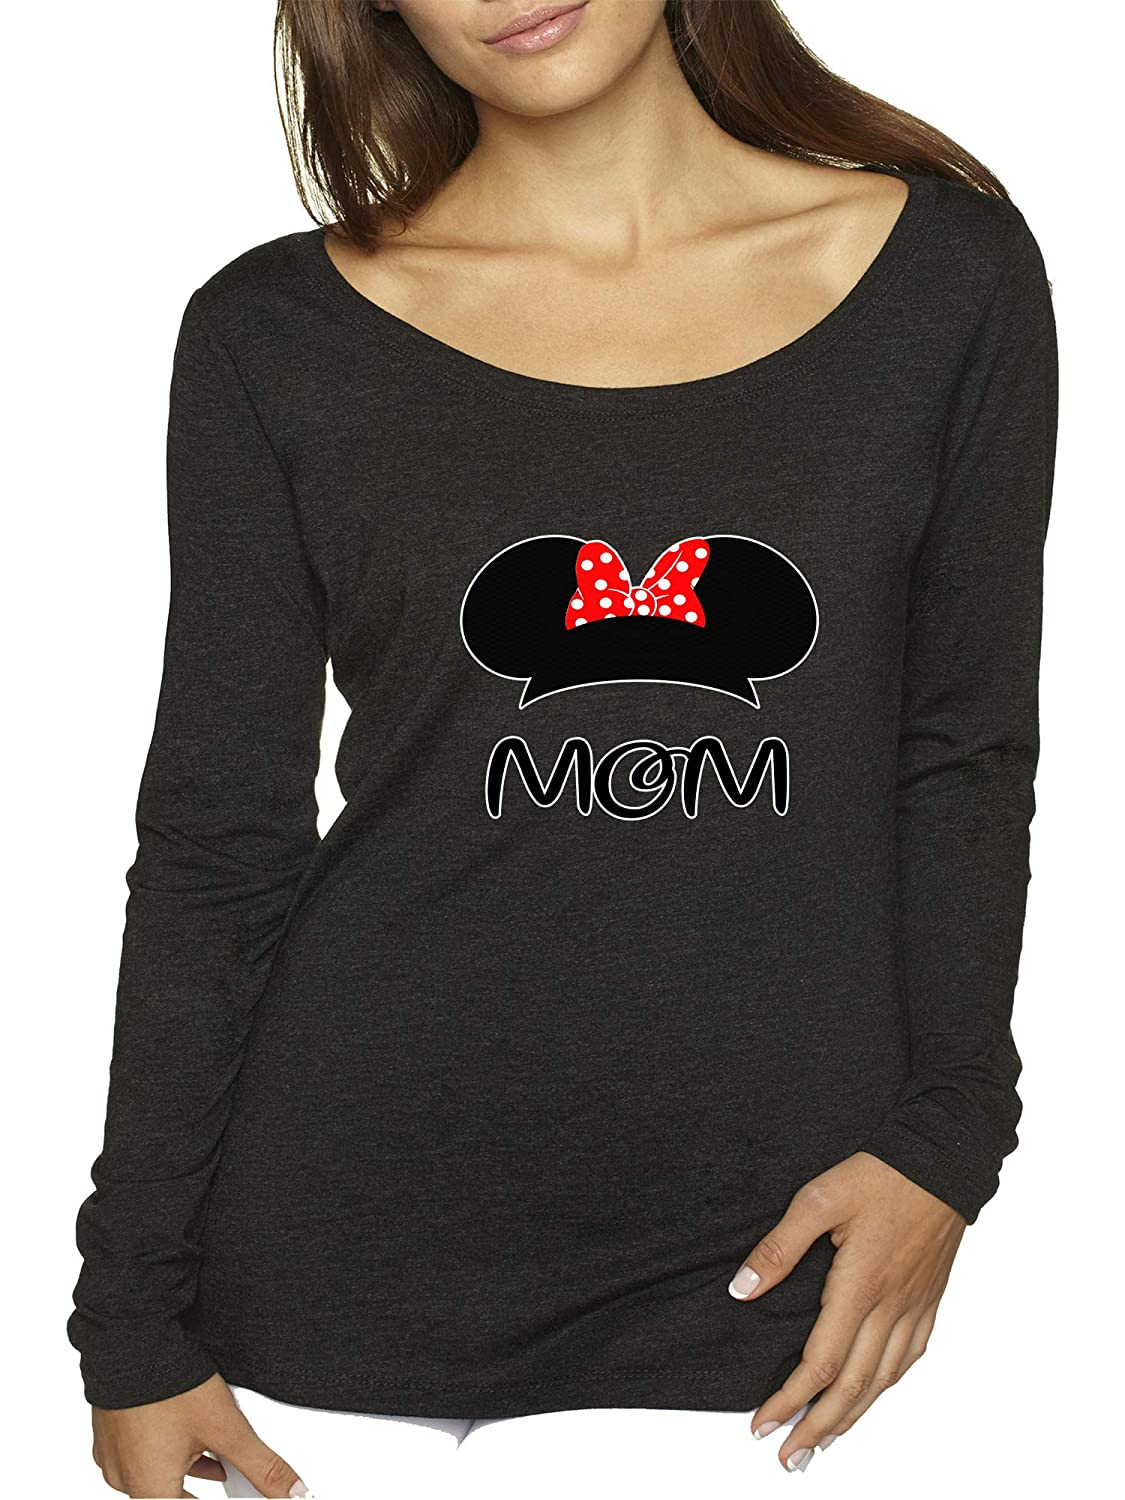 Black New Way 1148  Women's Long Sleeve TShirt Mom Mother Minnie Ears Polka Dot Bow